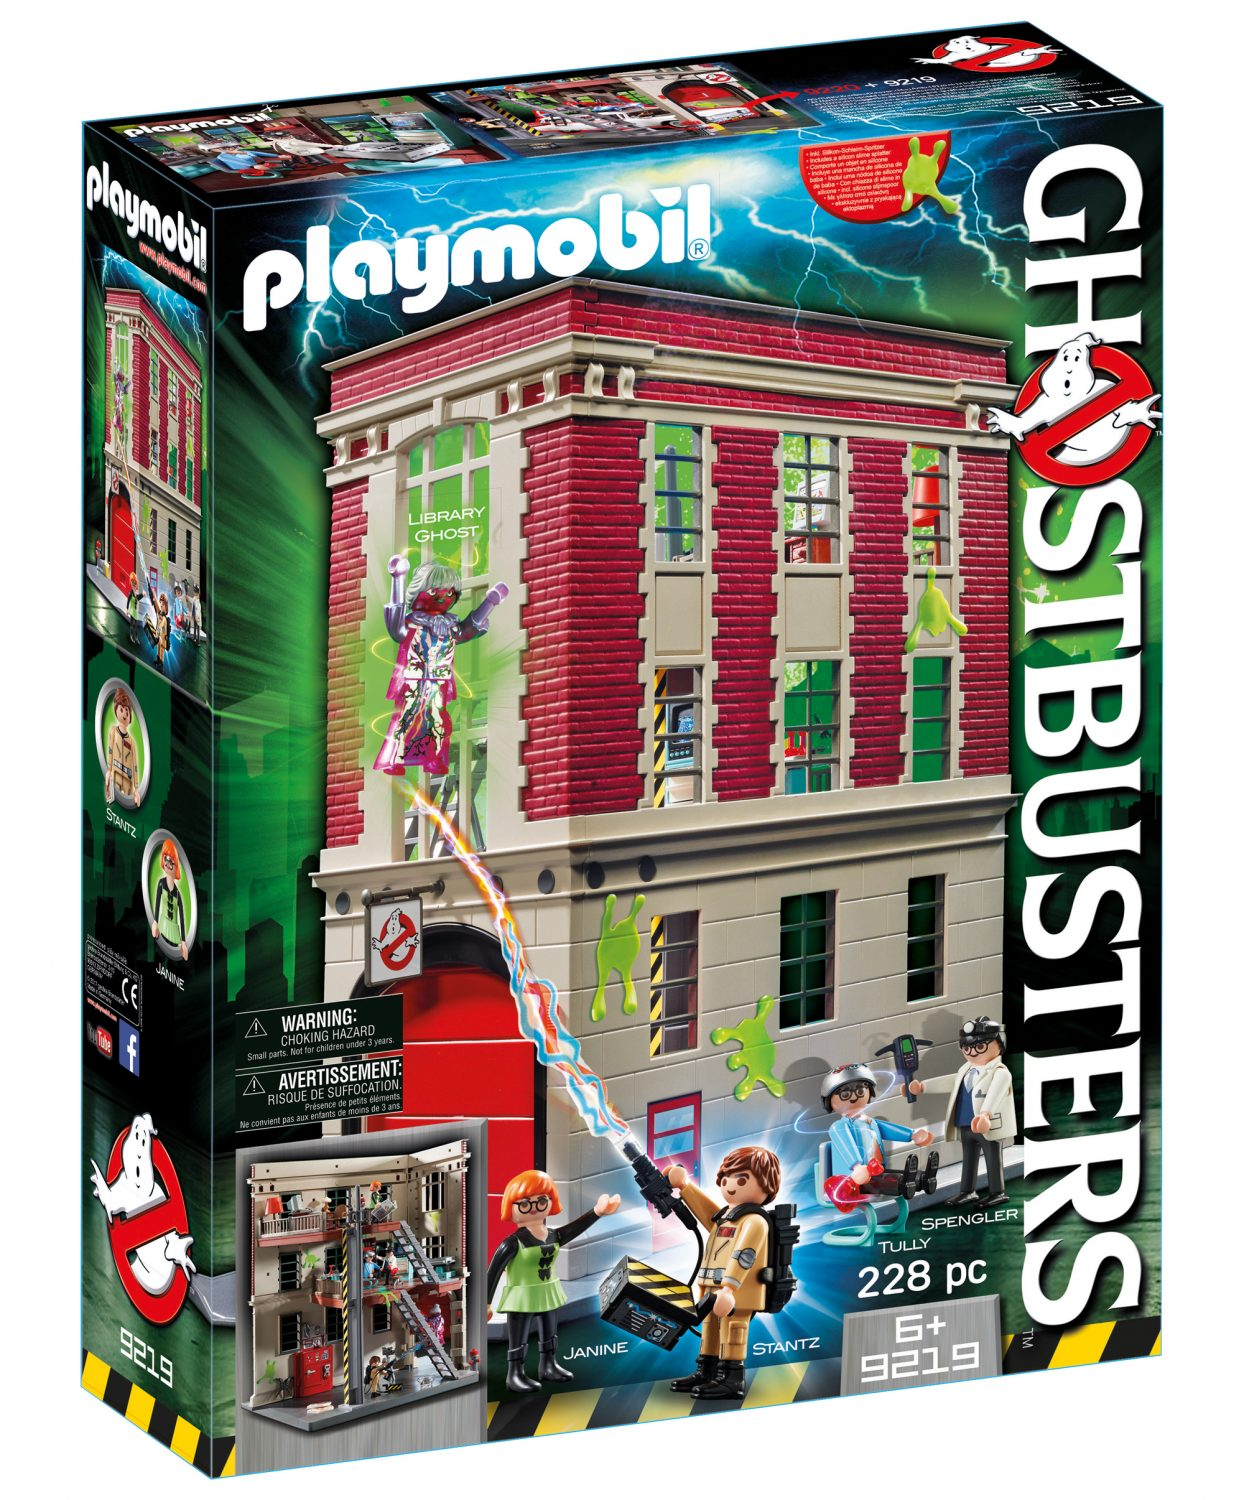 Playmobil Ghostbusters Firehouse Playset Now $42.99 On Amazon